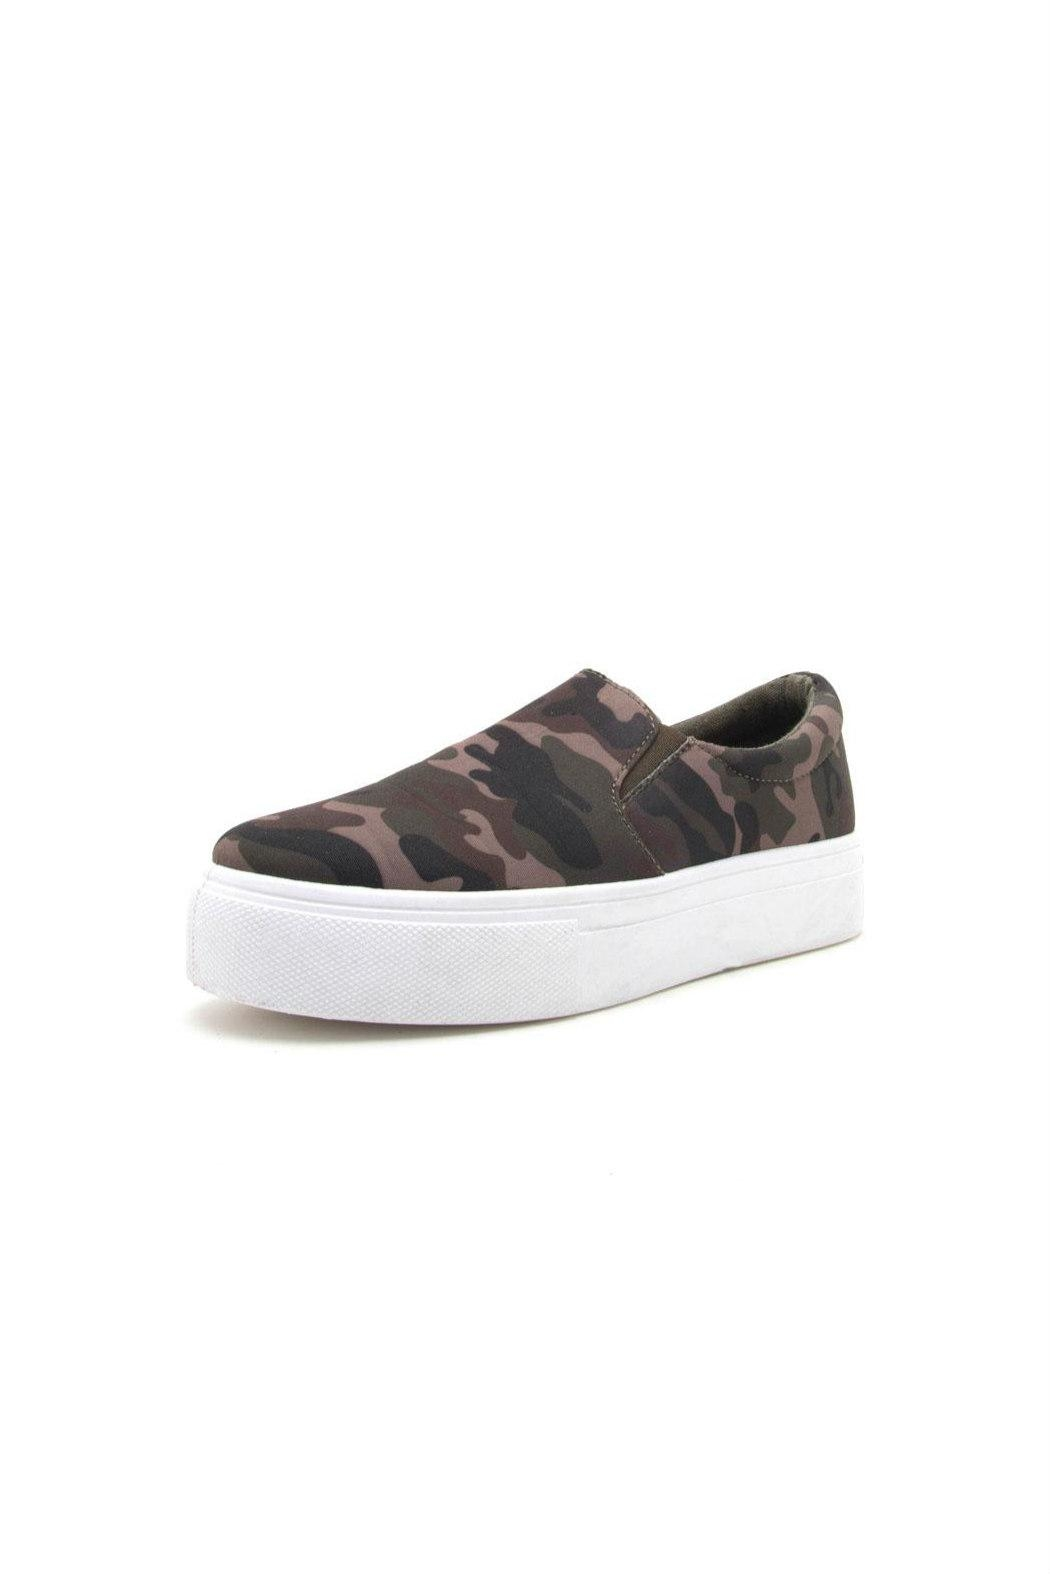 Qupid Royal Camo Sneaker - Front Cropped Image